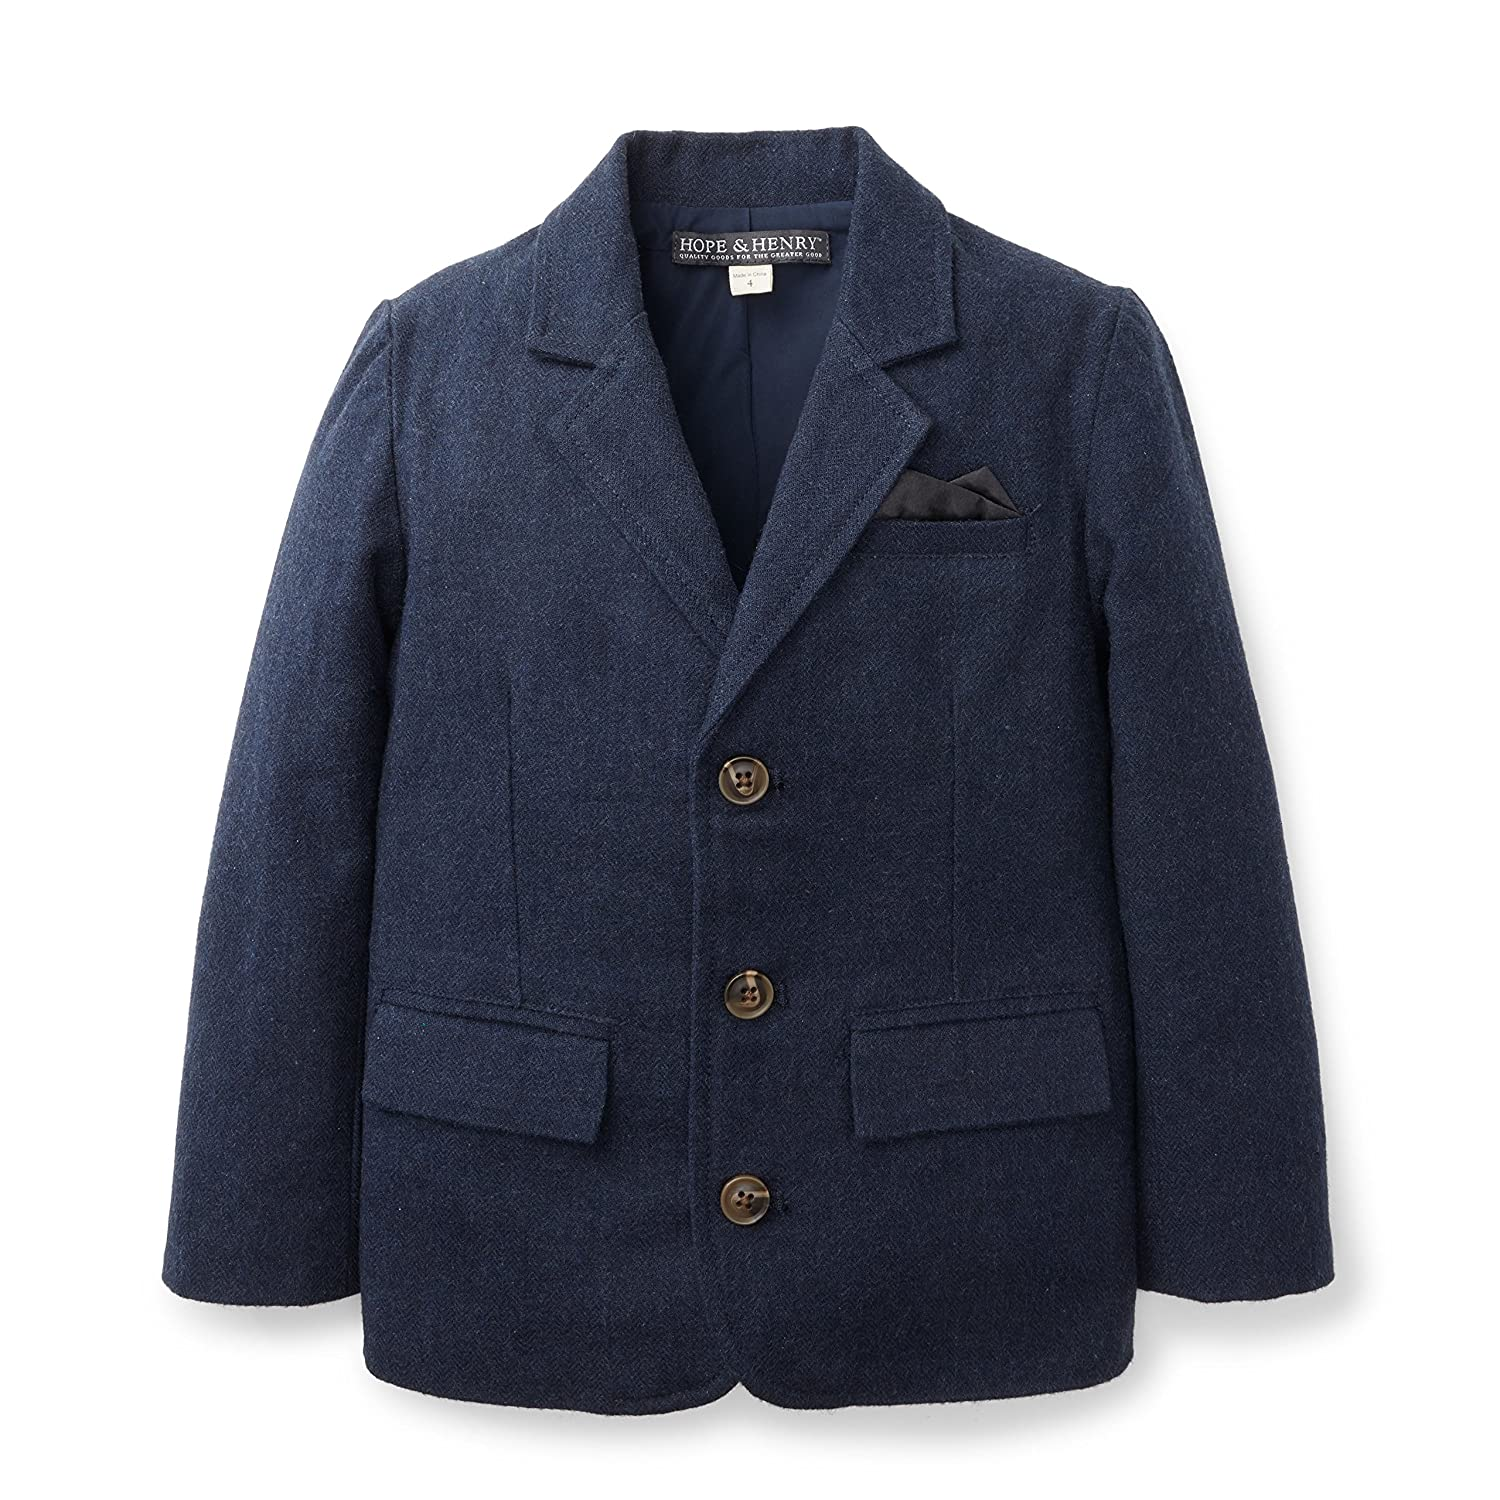 Hope & Henry Boys Navy Blazer Suit Jacket